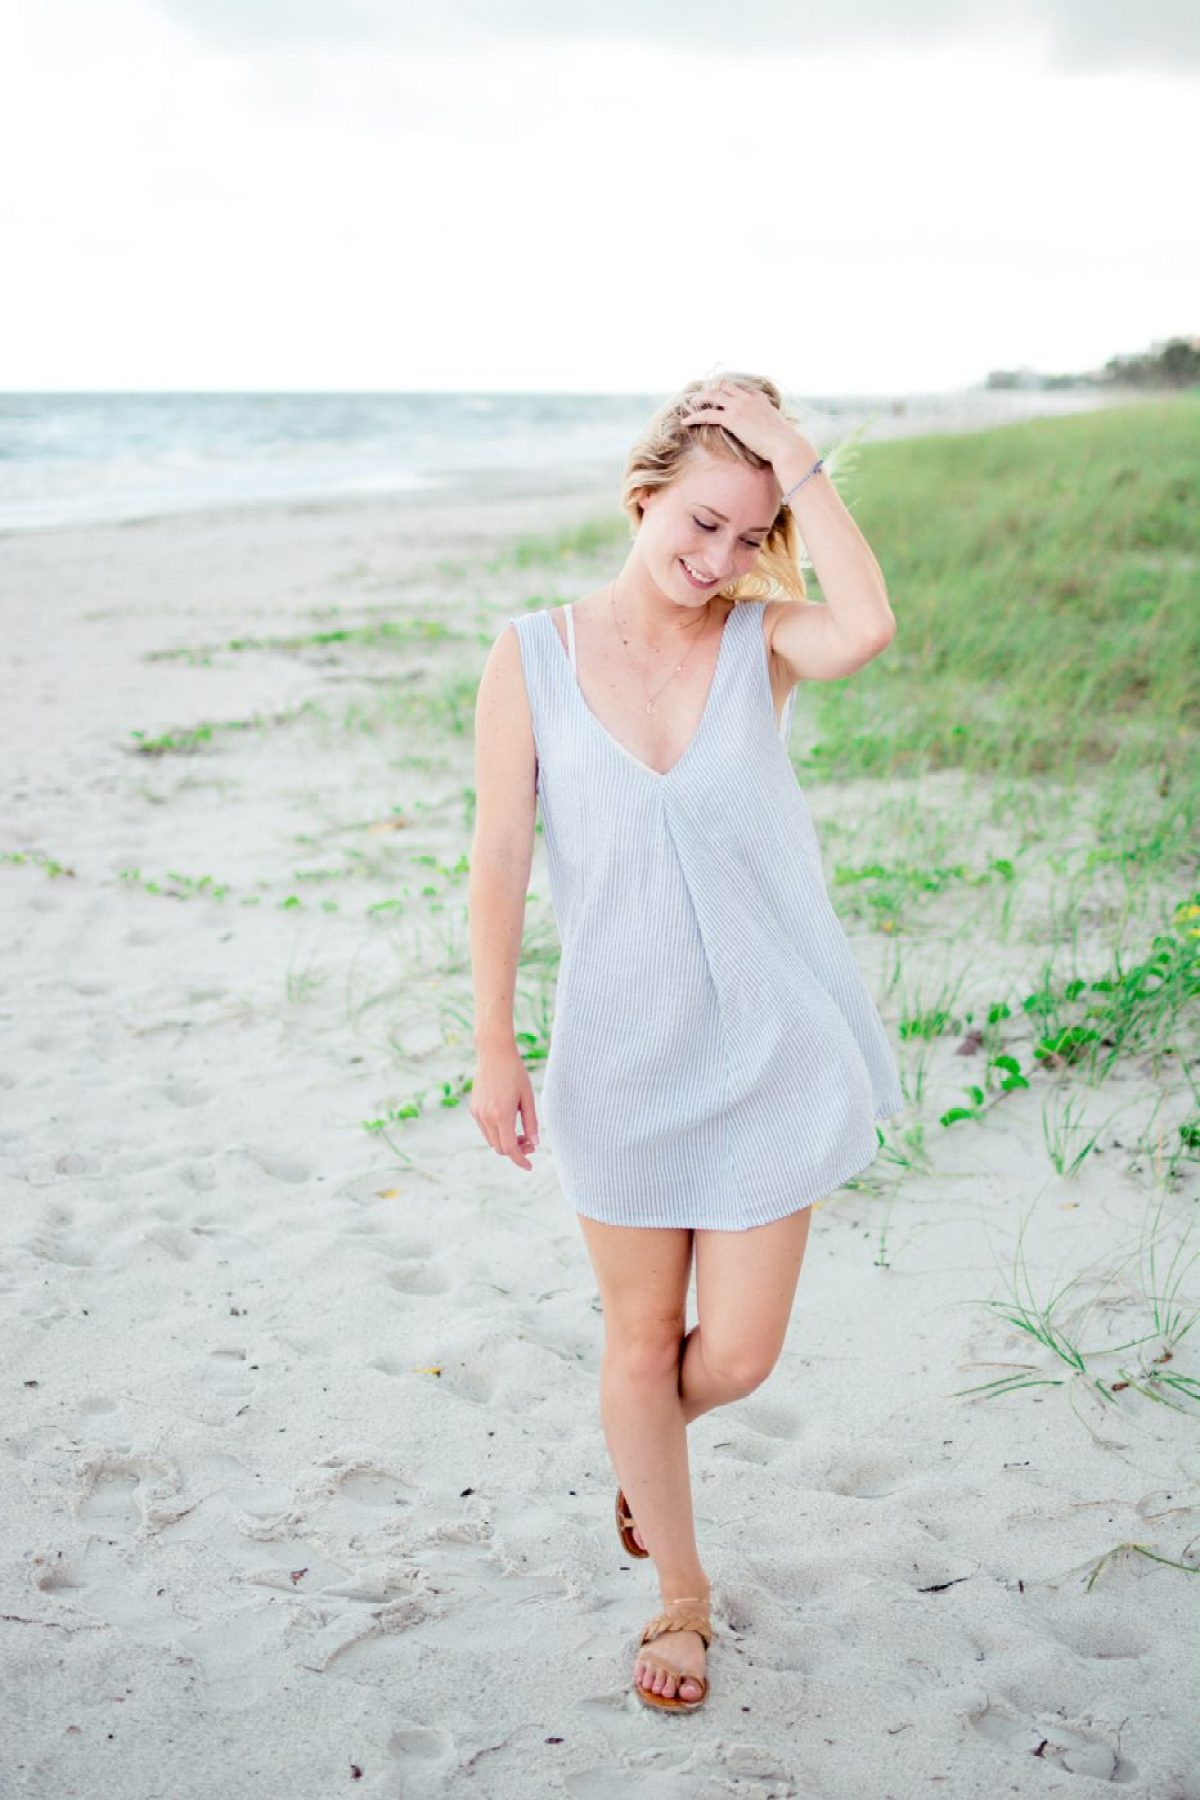 Jenny of Sweet Teal wearing a cotton dress on the beach